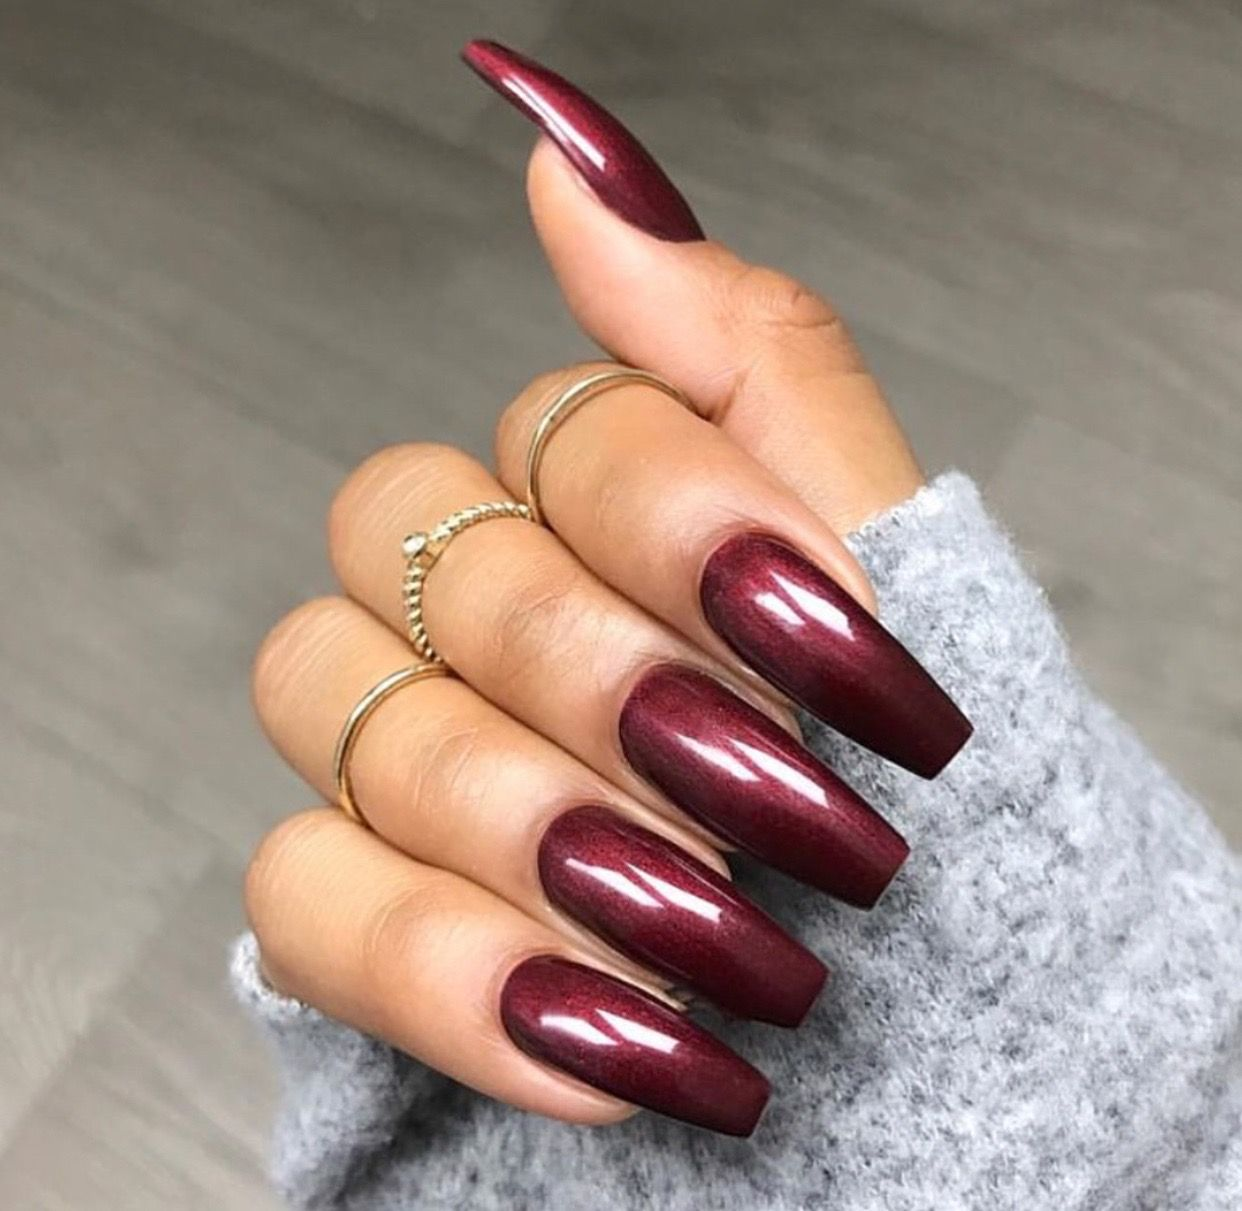 Burgundy Wine Nail Color | Long Square Coffin Acrylic Nails ...